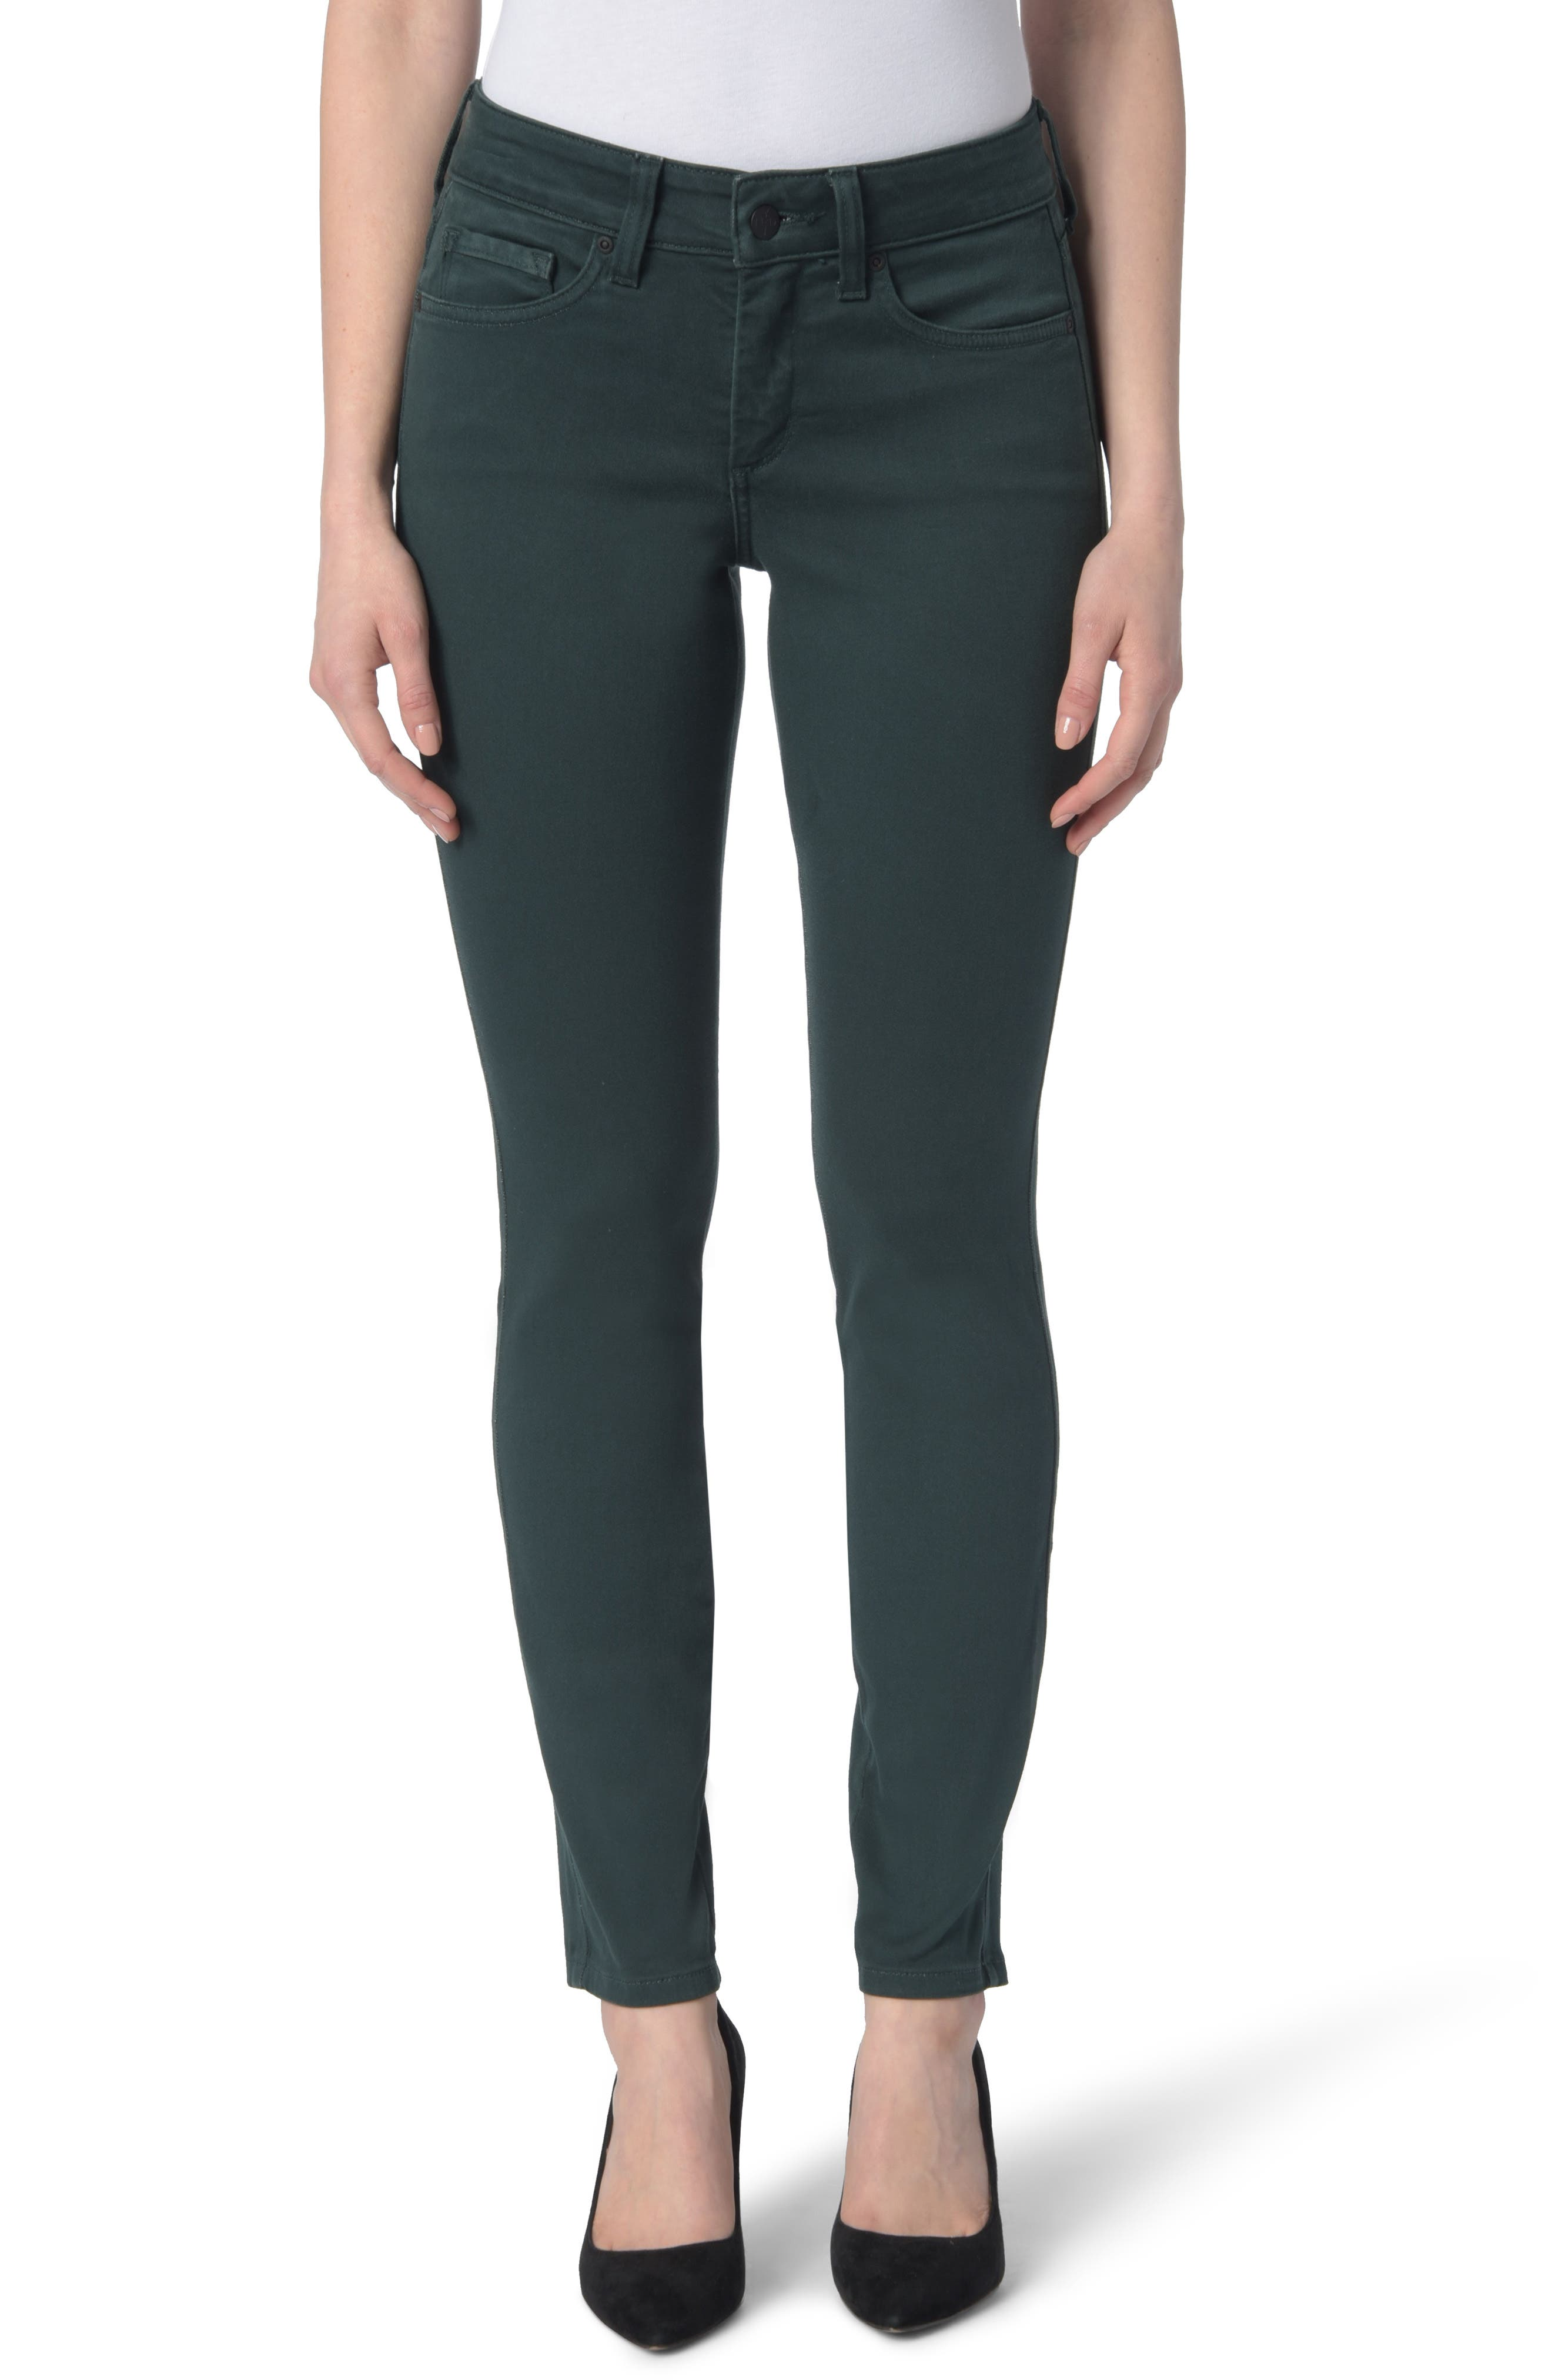 Ami High Waist Colored Stretch Skinny Jeans,                         Main,                         color, VERIDIAN